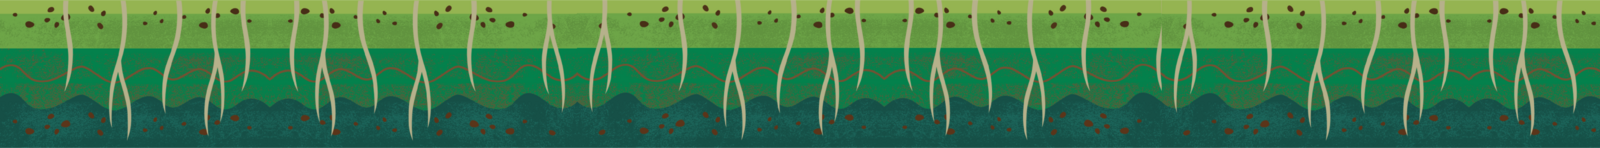 Wholesome-Regen-soil-flat-small-03-01